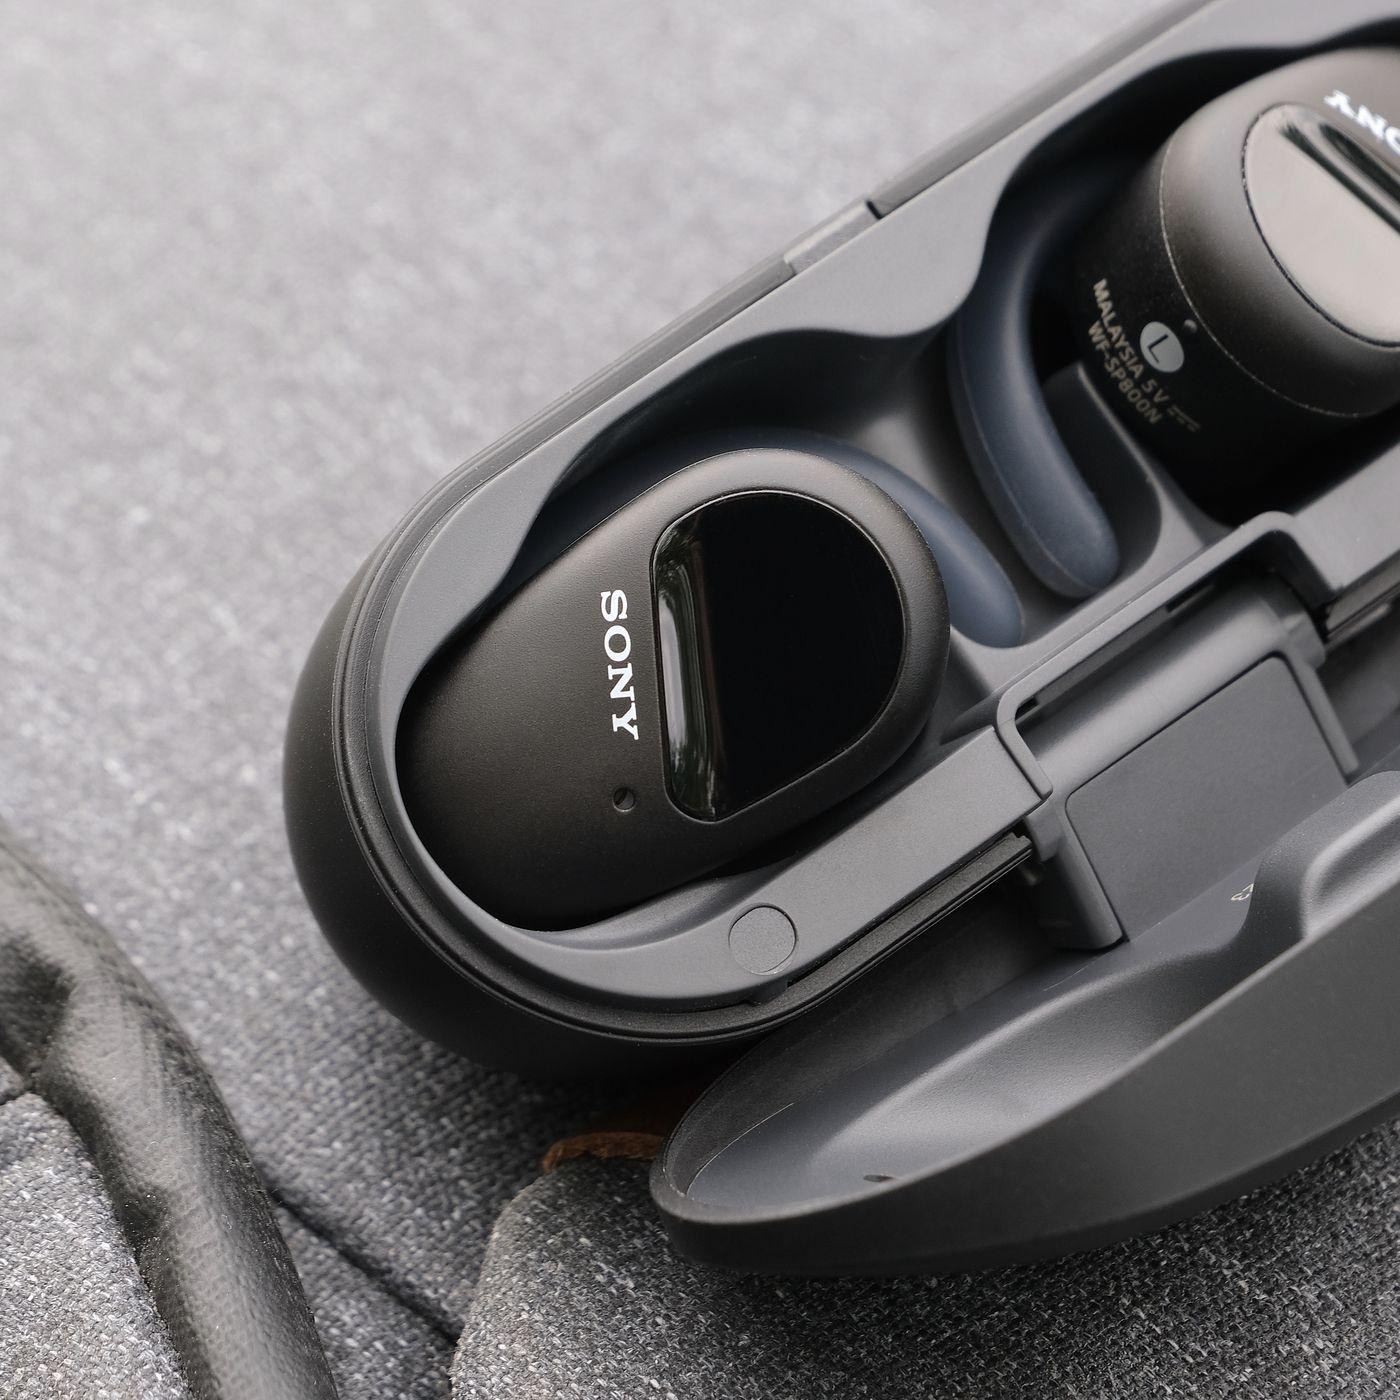 Sony WF-SP800N review: noise-canceling earbuds for the fitness crowd - The  Verge